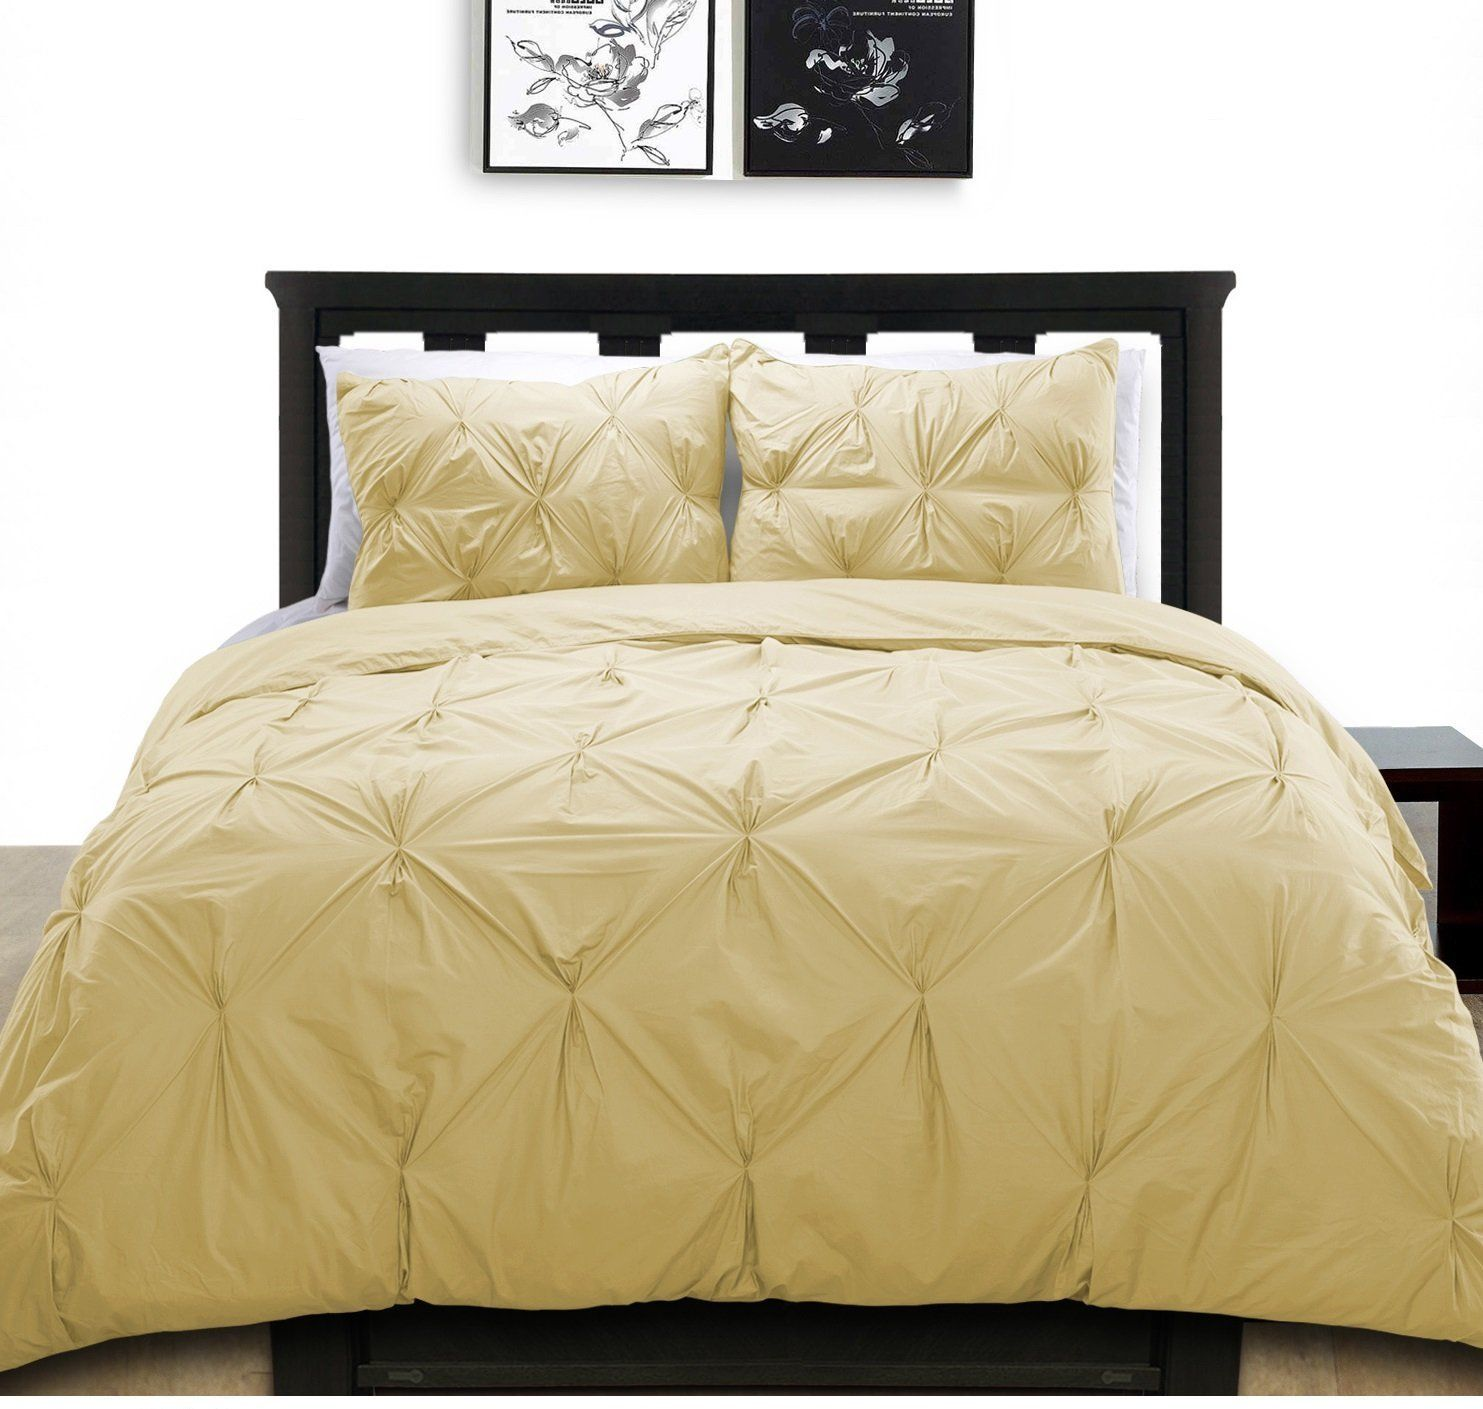 pinch queen pleat duvets floral pinched covers pleated cover piece bedding sets pintuck green set duvet c chic dark